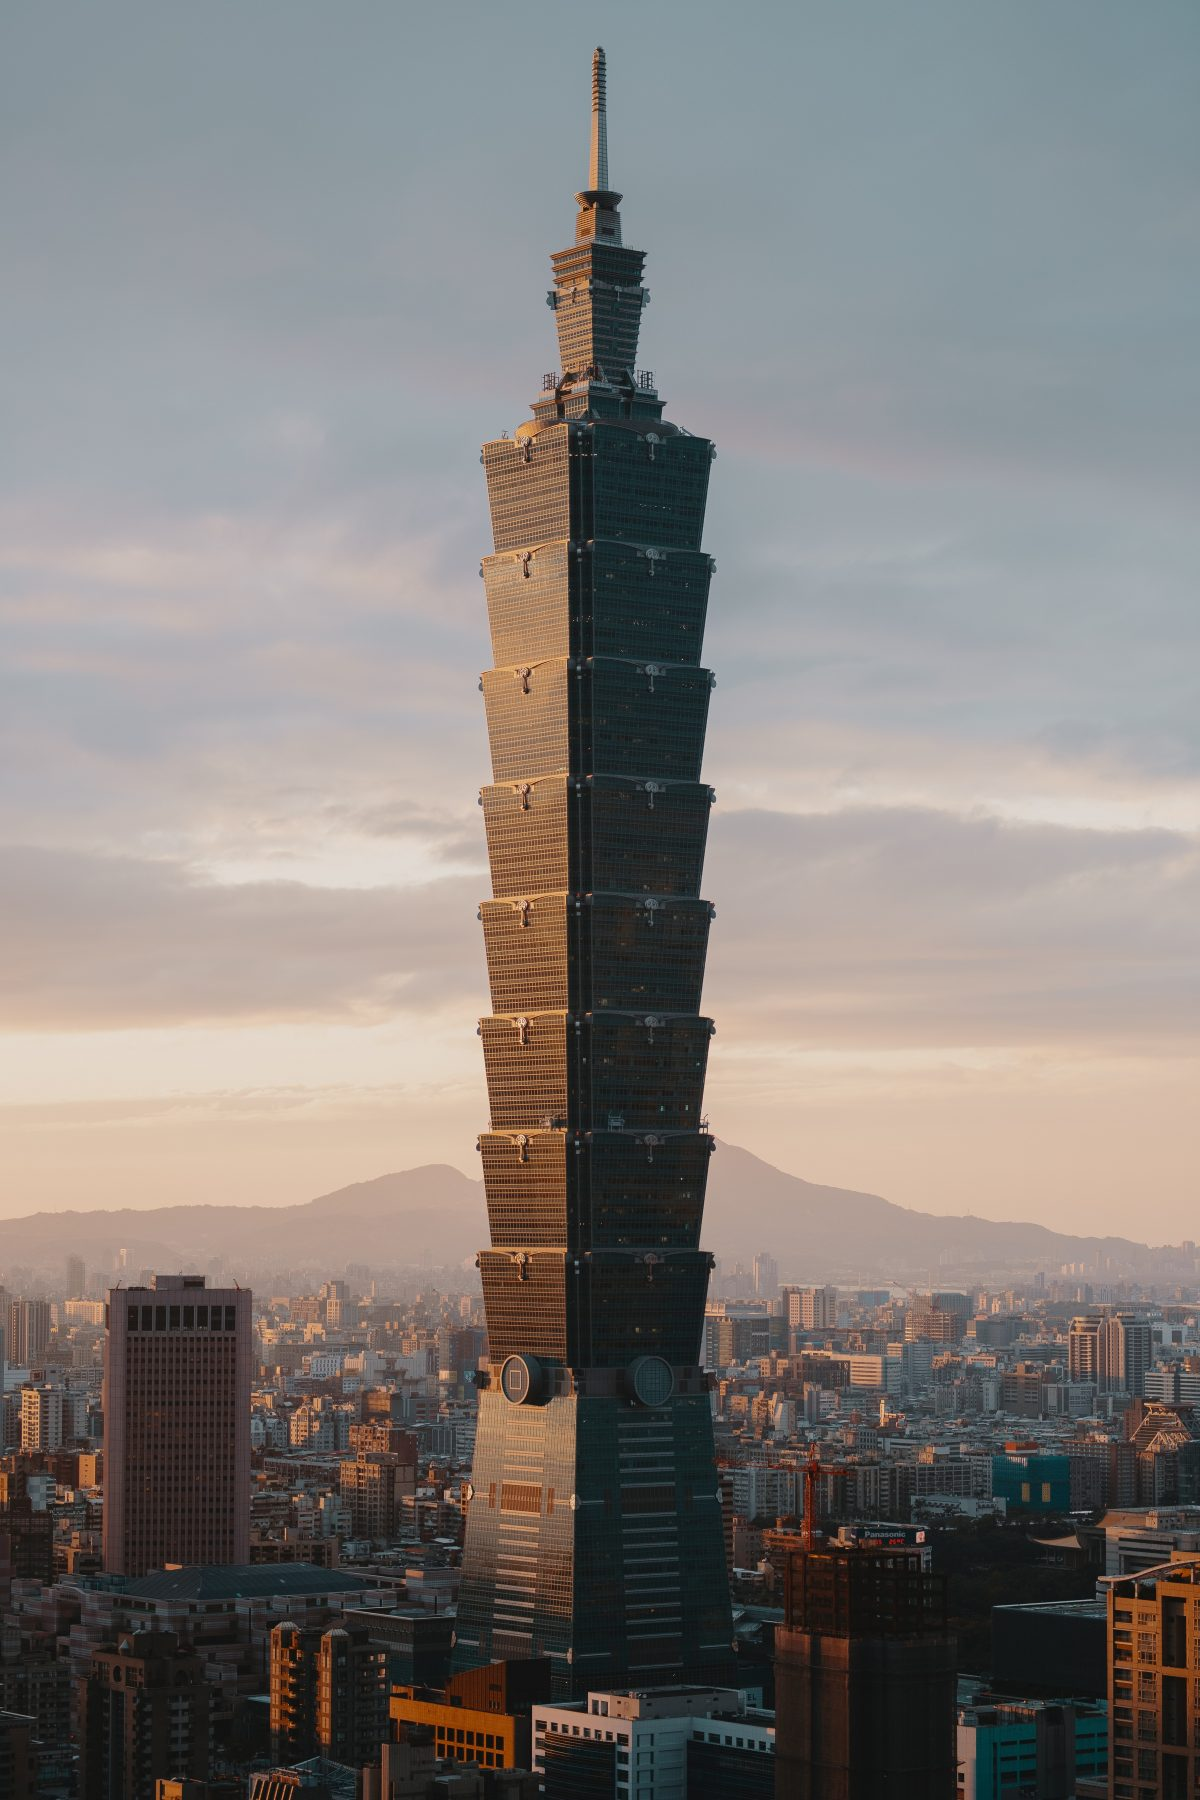 Majestic view of Taiwan's tallest building and the icon of Taipei, Taipei 101 among other buildings in the city